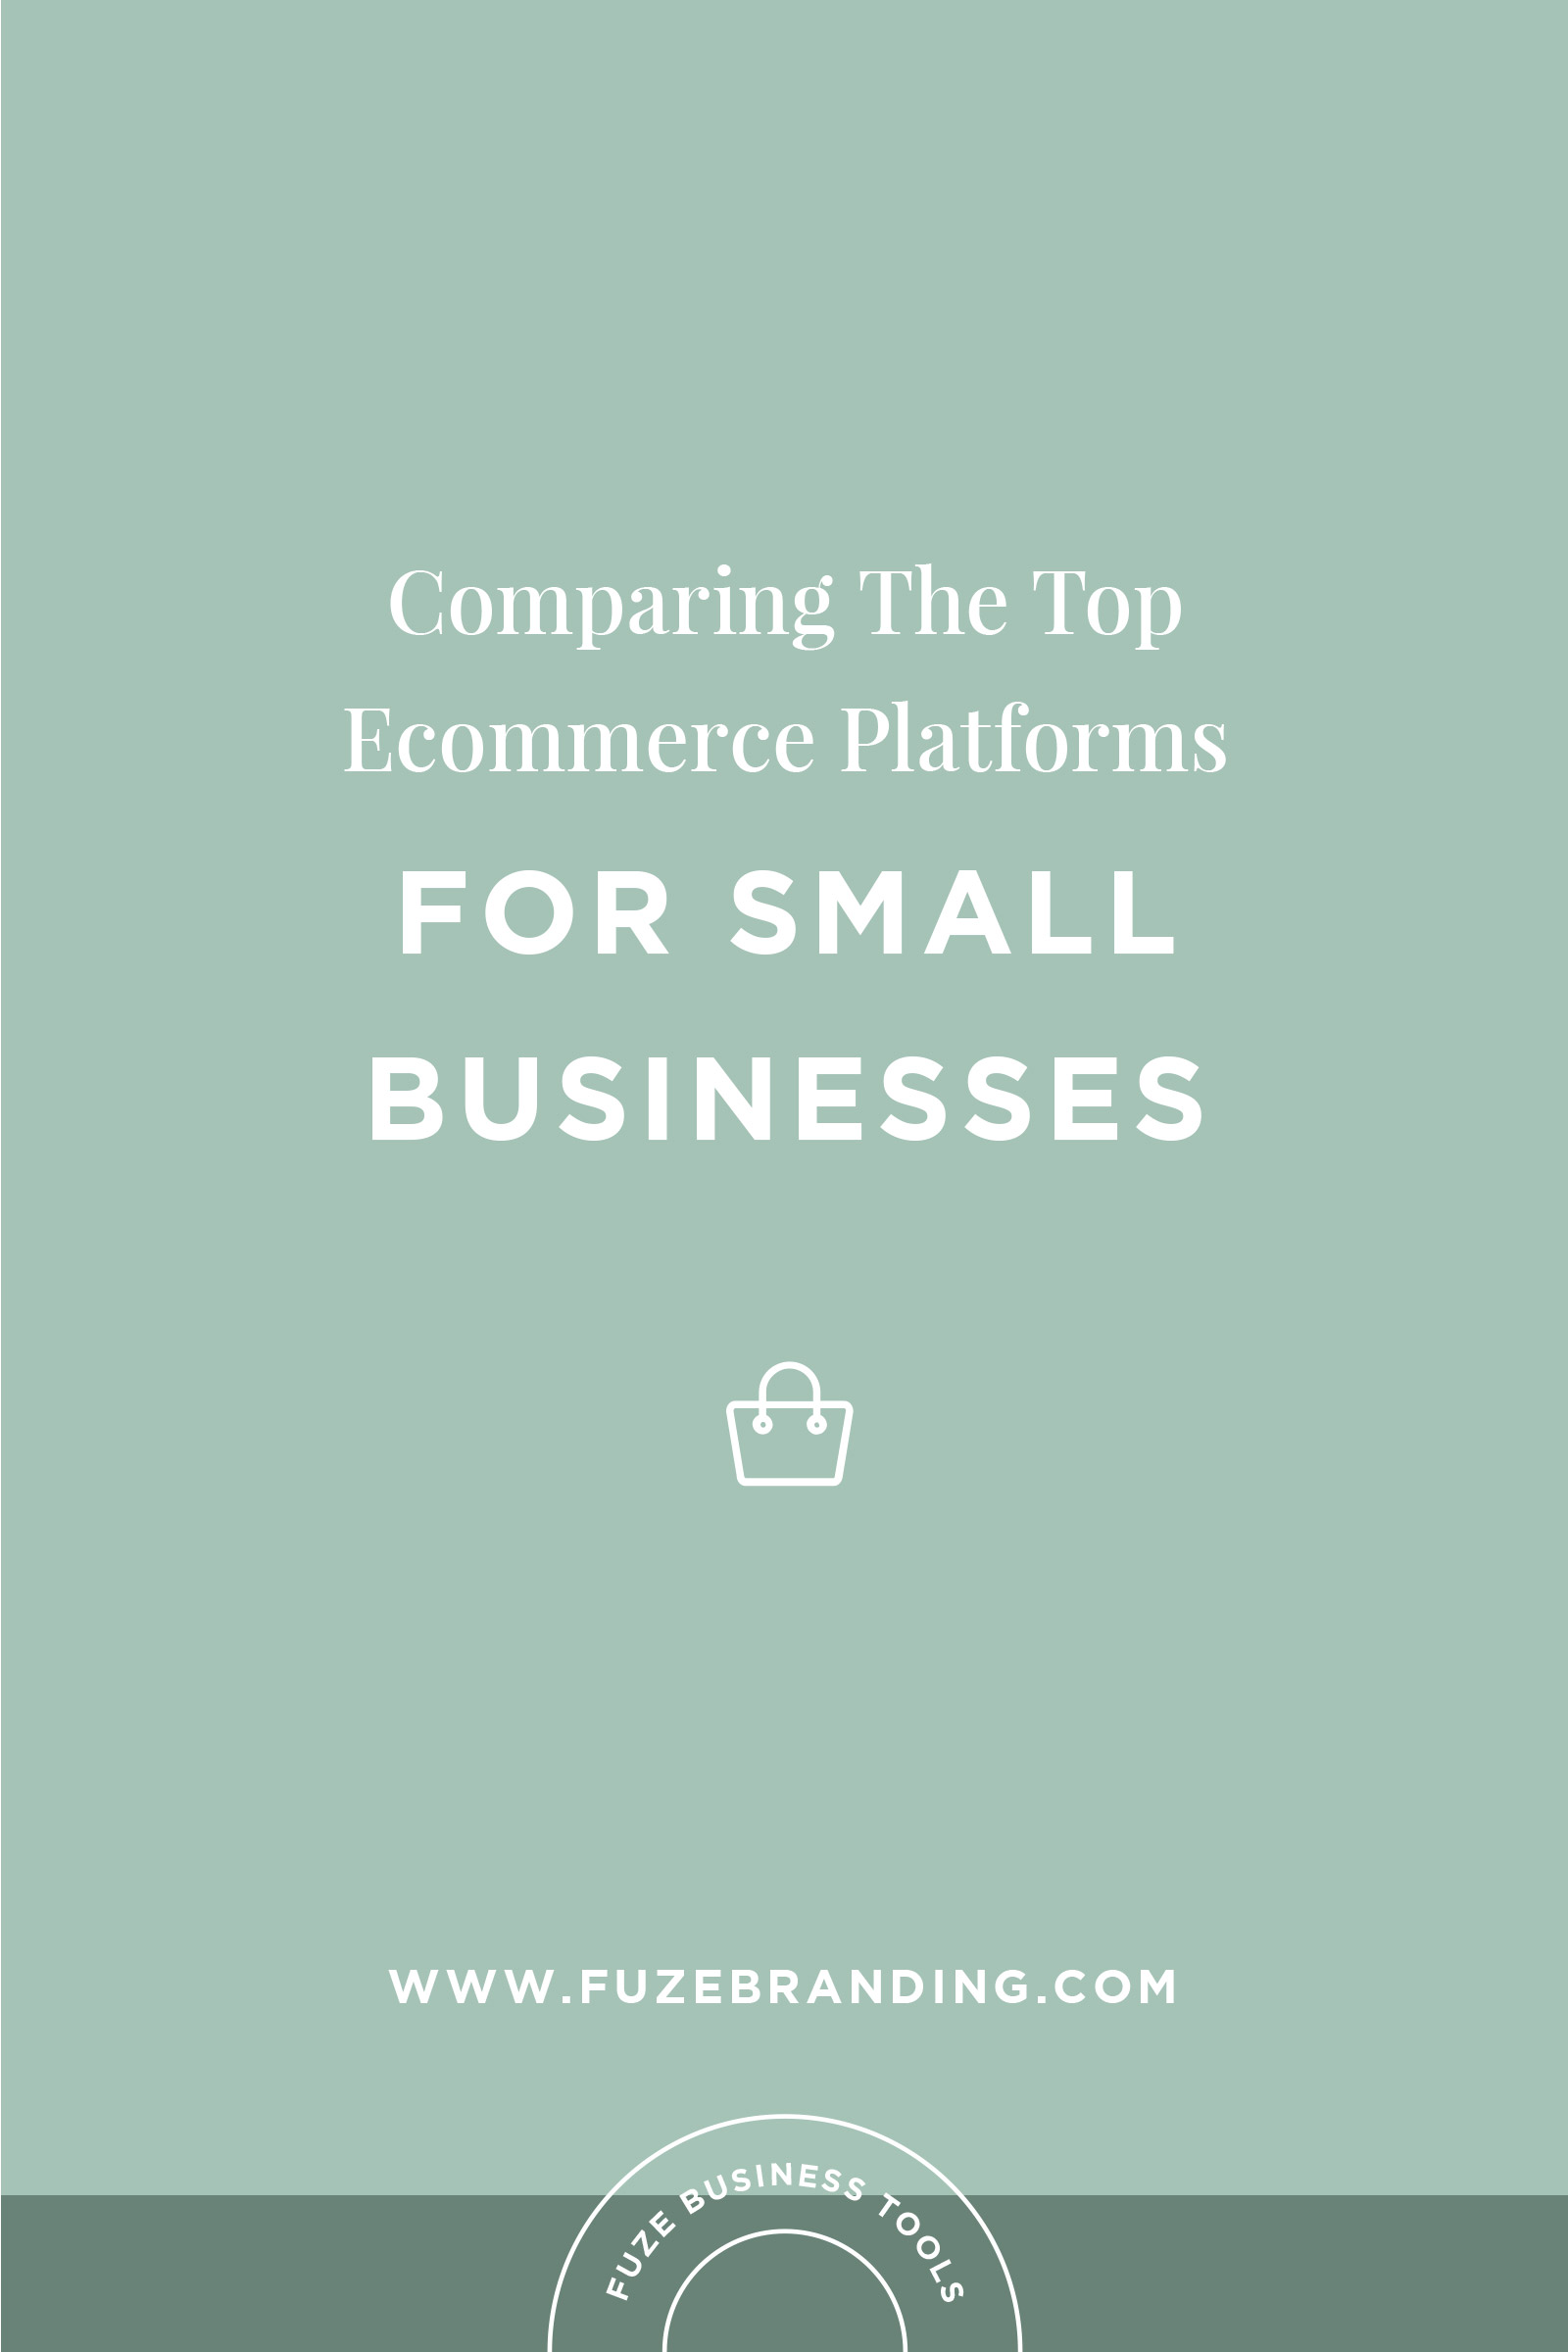 Fuze Branding Comparing The Top Ecommerce Platforms For Small Businesses